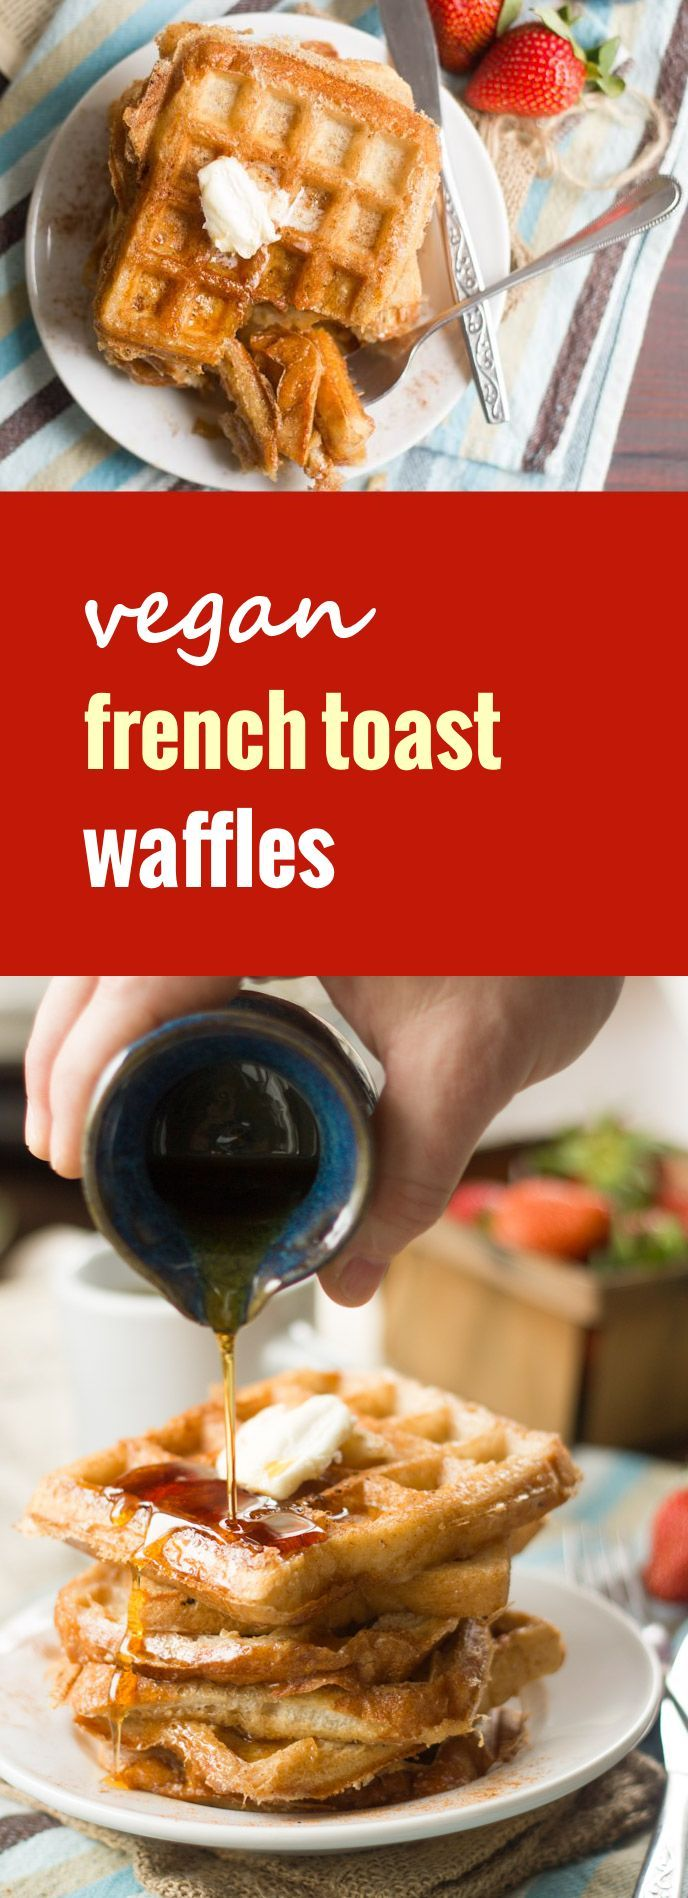 It's a French toast! Nope...it's a waffle! Well no, really, it's a magical combination of both. It's vegan French toast waffles, made from crusty bread slices soaked up in coconut milk batter and cooked up in the waffle iron!